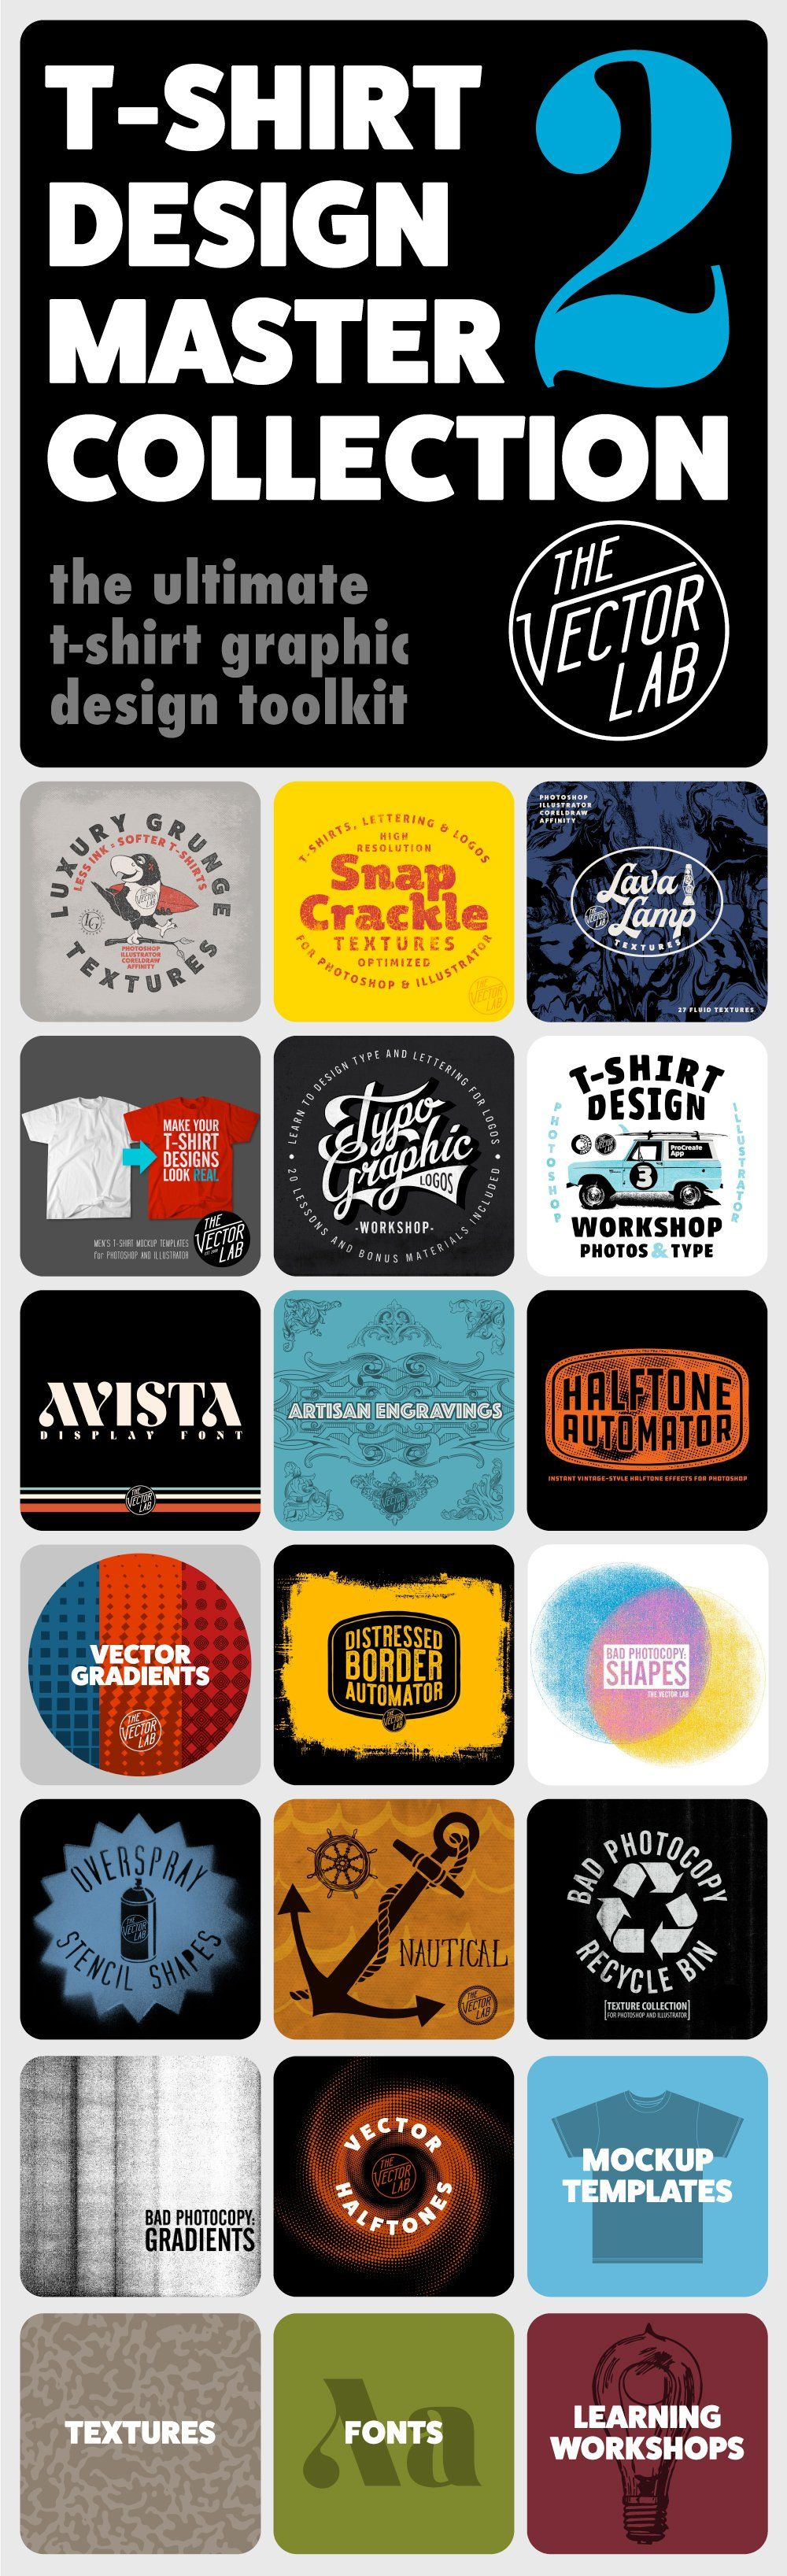 a7811c9fa T-Shirt Design Master Collection 2 - for Photoshop and Illustrator